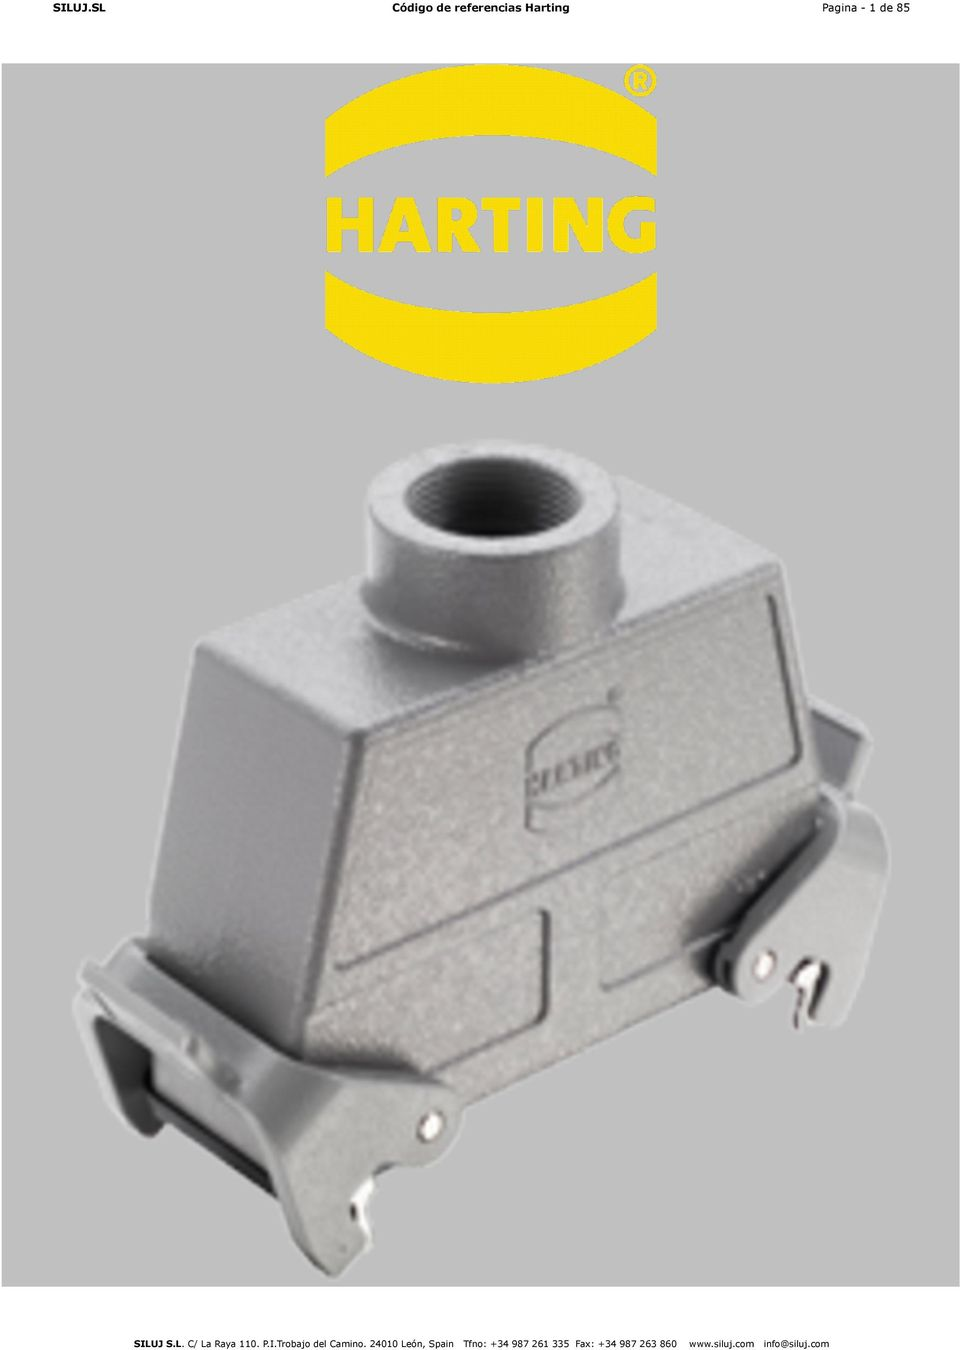 Special Cable clamp PG 36 Acces HARTING 09000005196